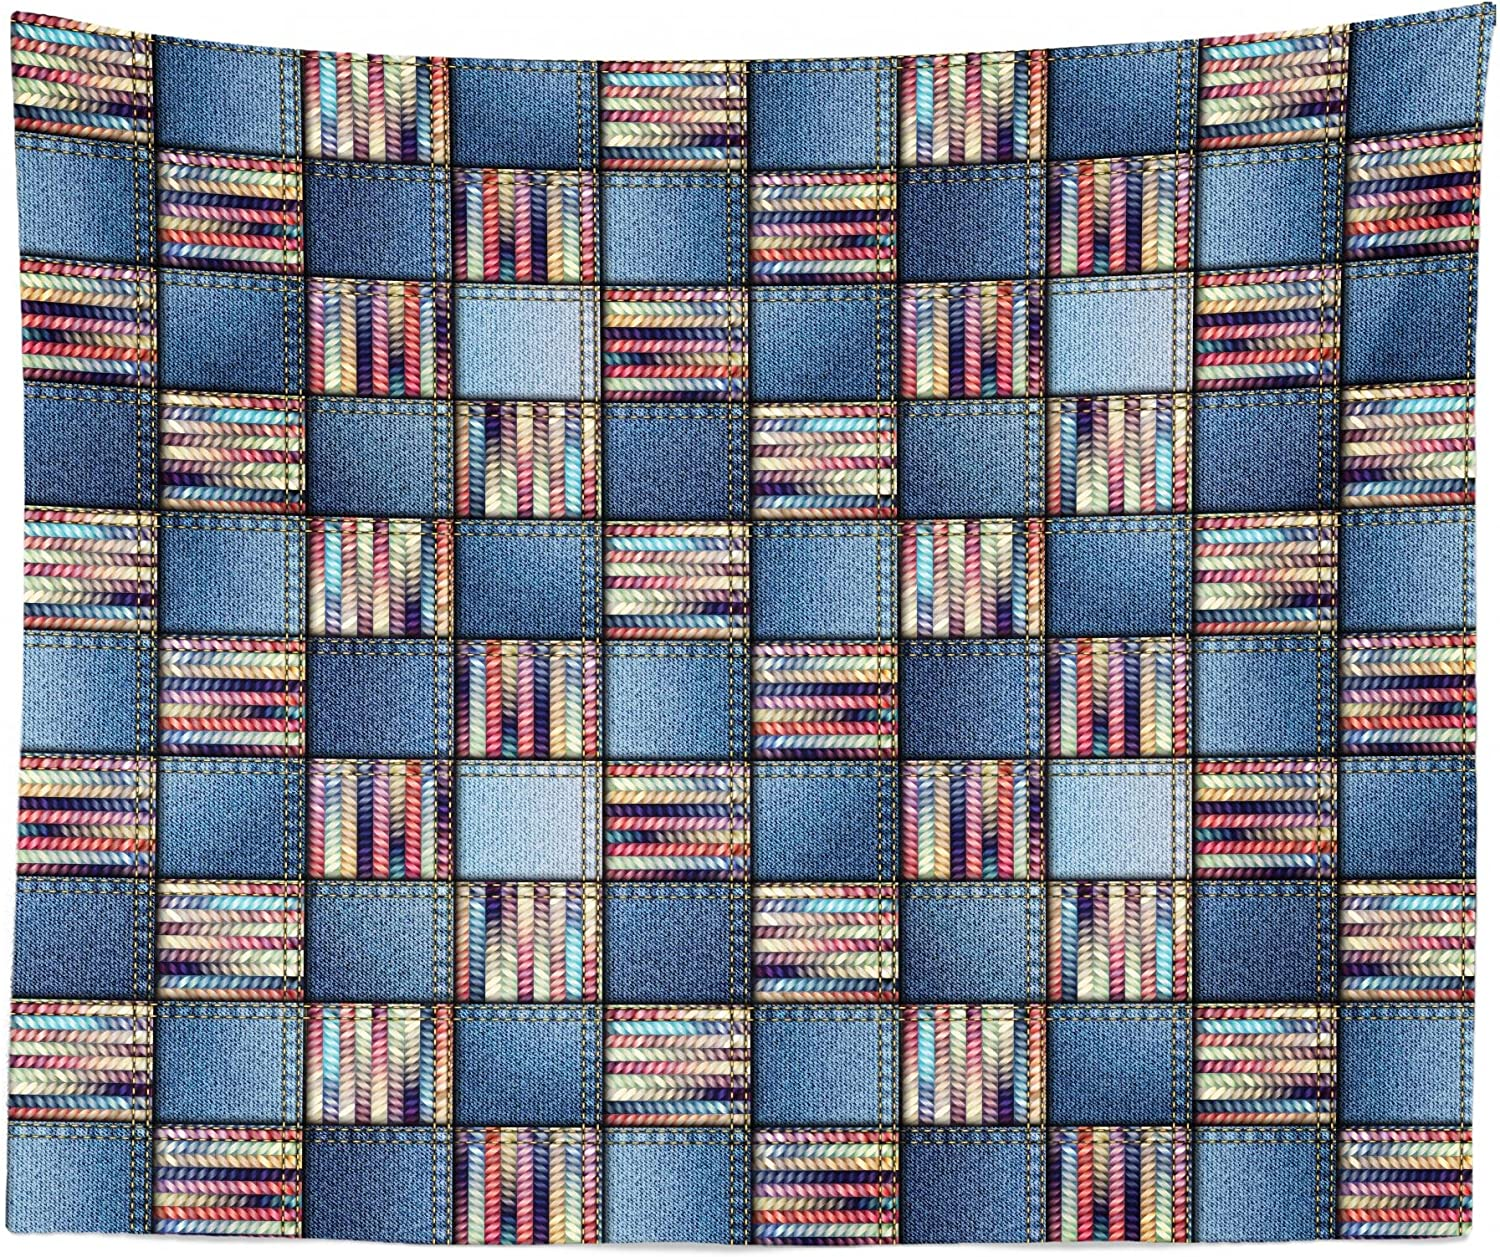 """Lunarable Patchwork Tapestry King Size, Quilt Design with Scraps of Denim and Knit Graphic Colorful Melange Print, Wall Hanging Bedspread Bed Cover Wall Decor, 104"""" X 88"""", Blue"""